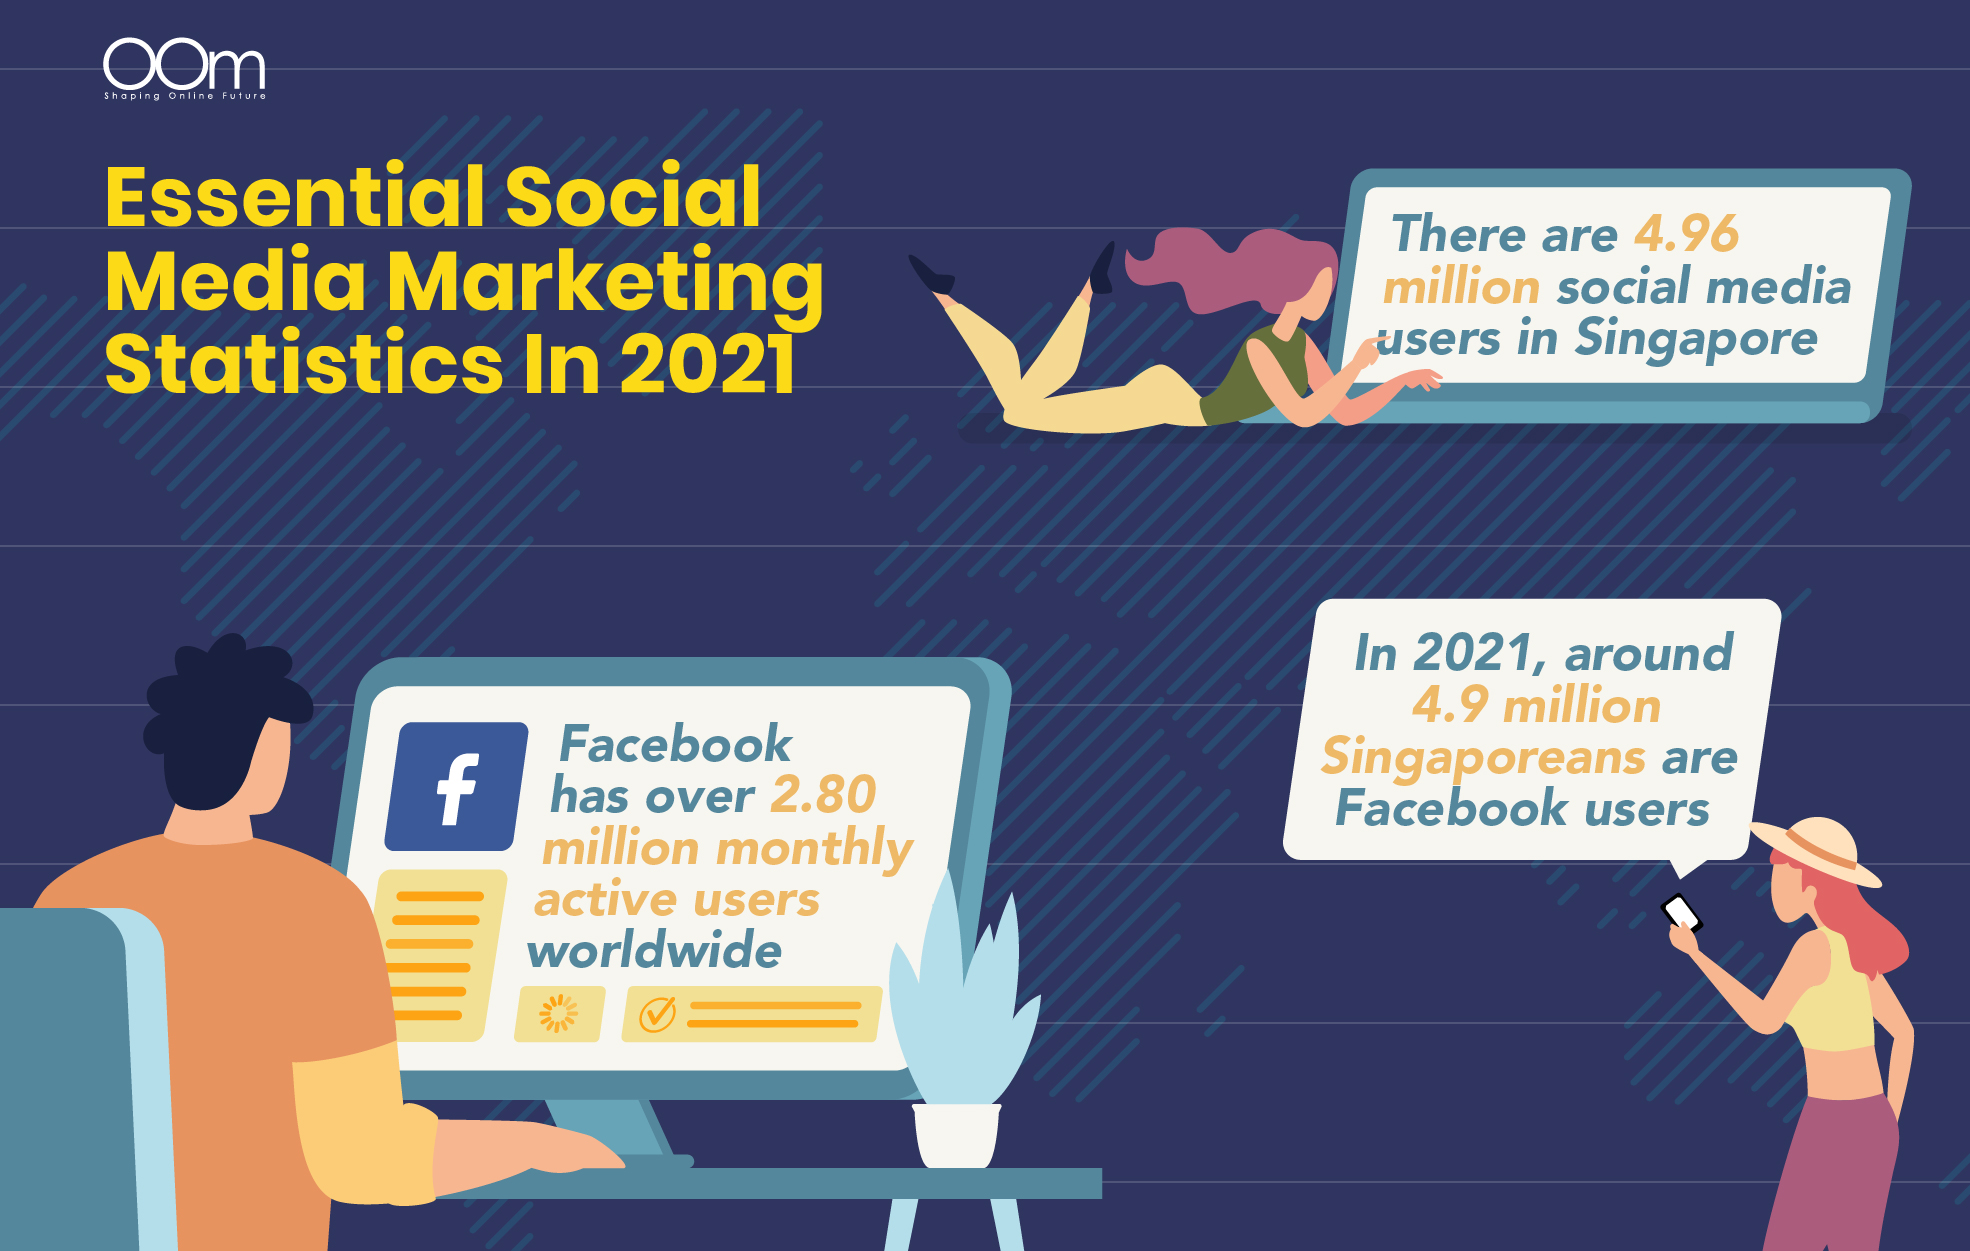 Essential Social Media Marketing Statistics In 2021